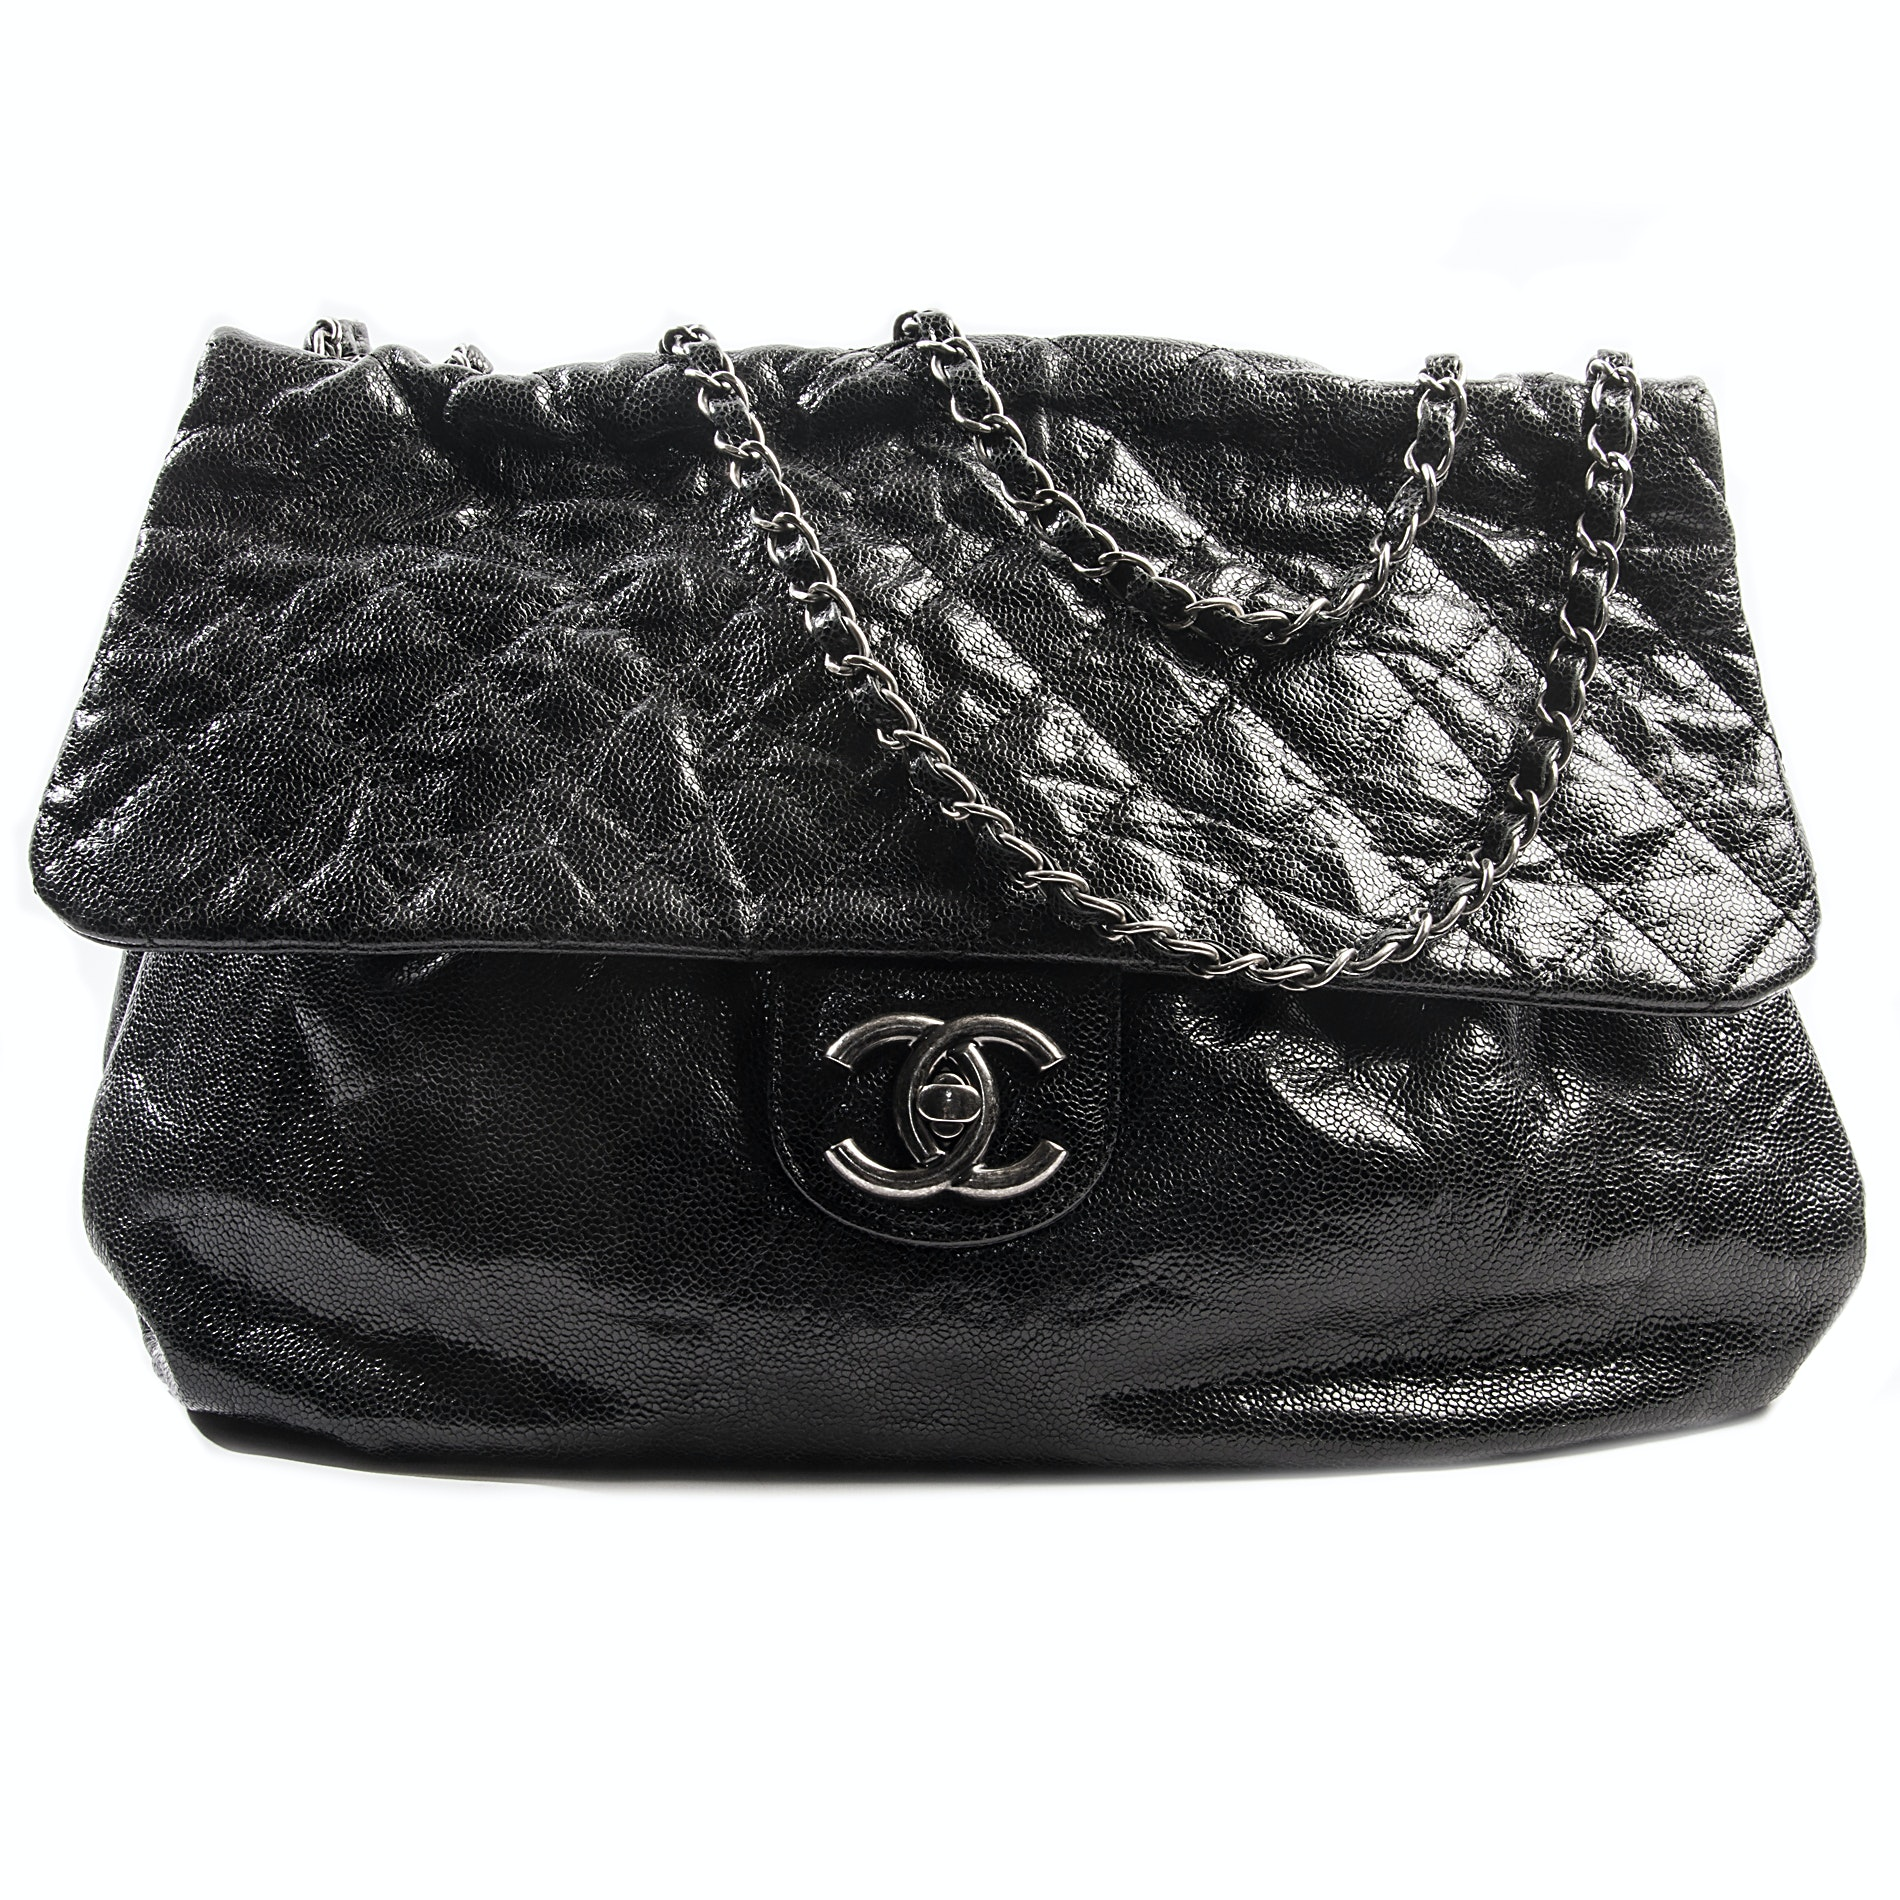 Chanel Black Python Quilted Bag